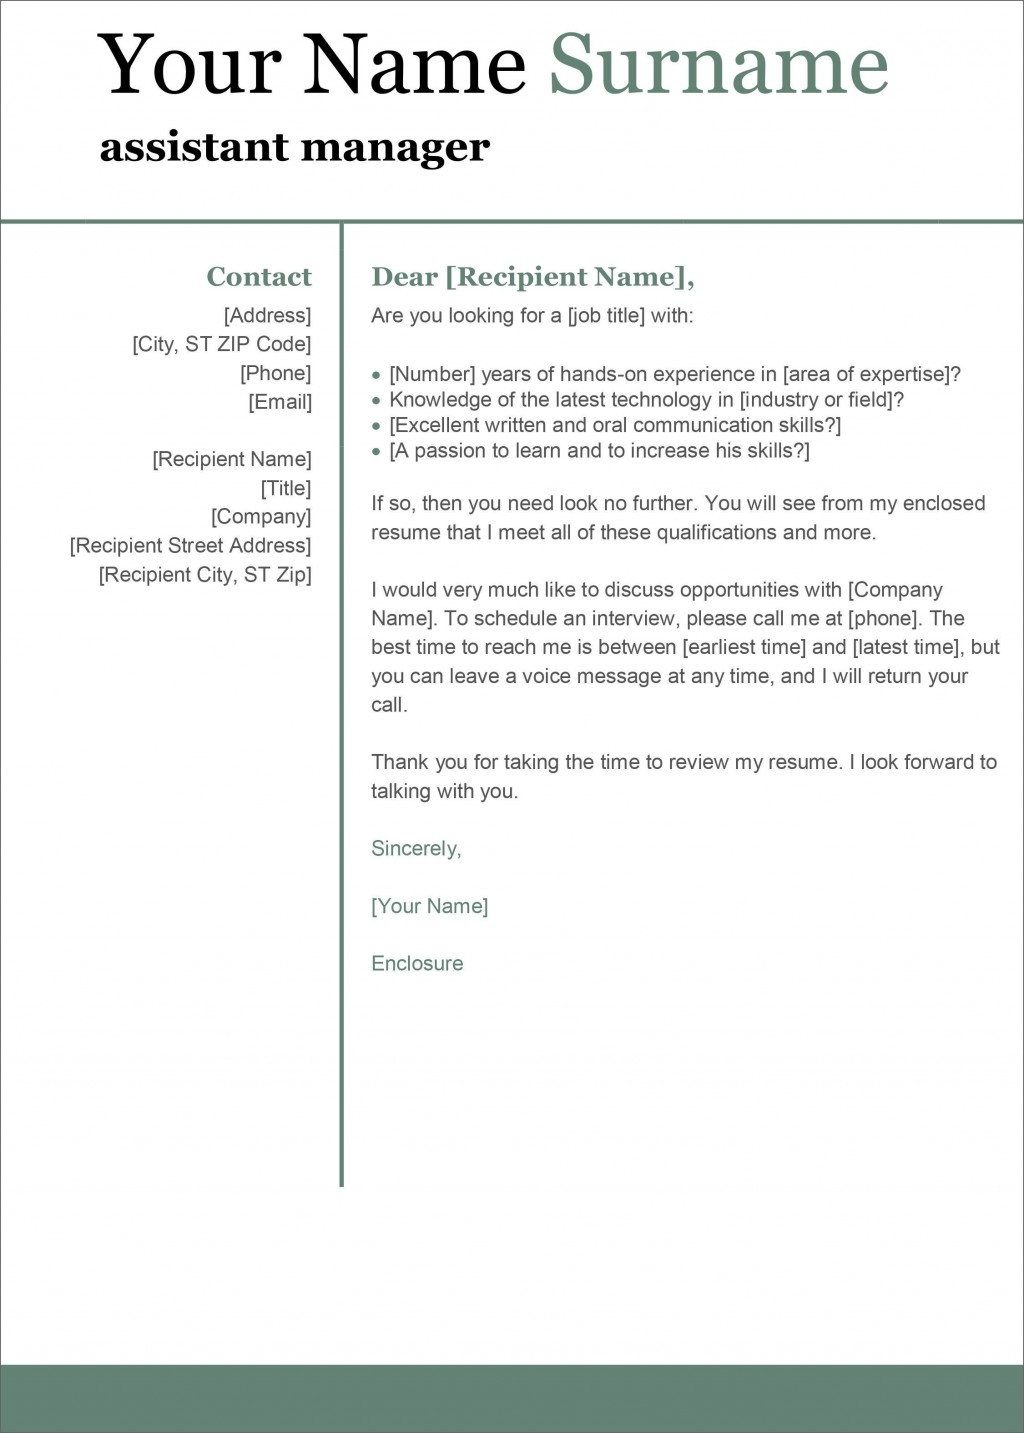 004 Surprising Microsoft Cover Letter Template 2020 Photo Large